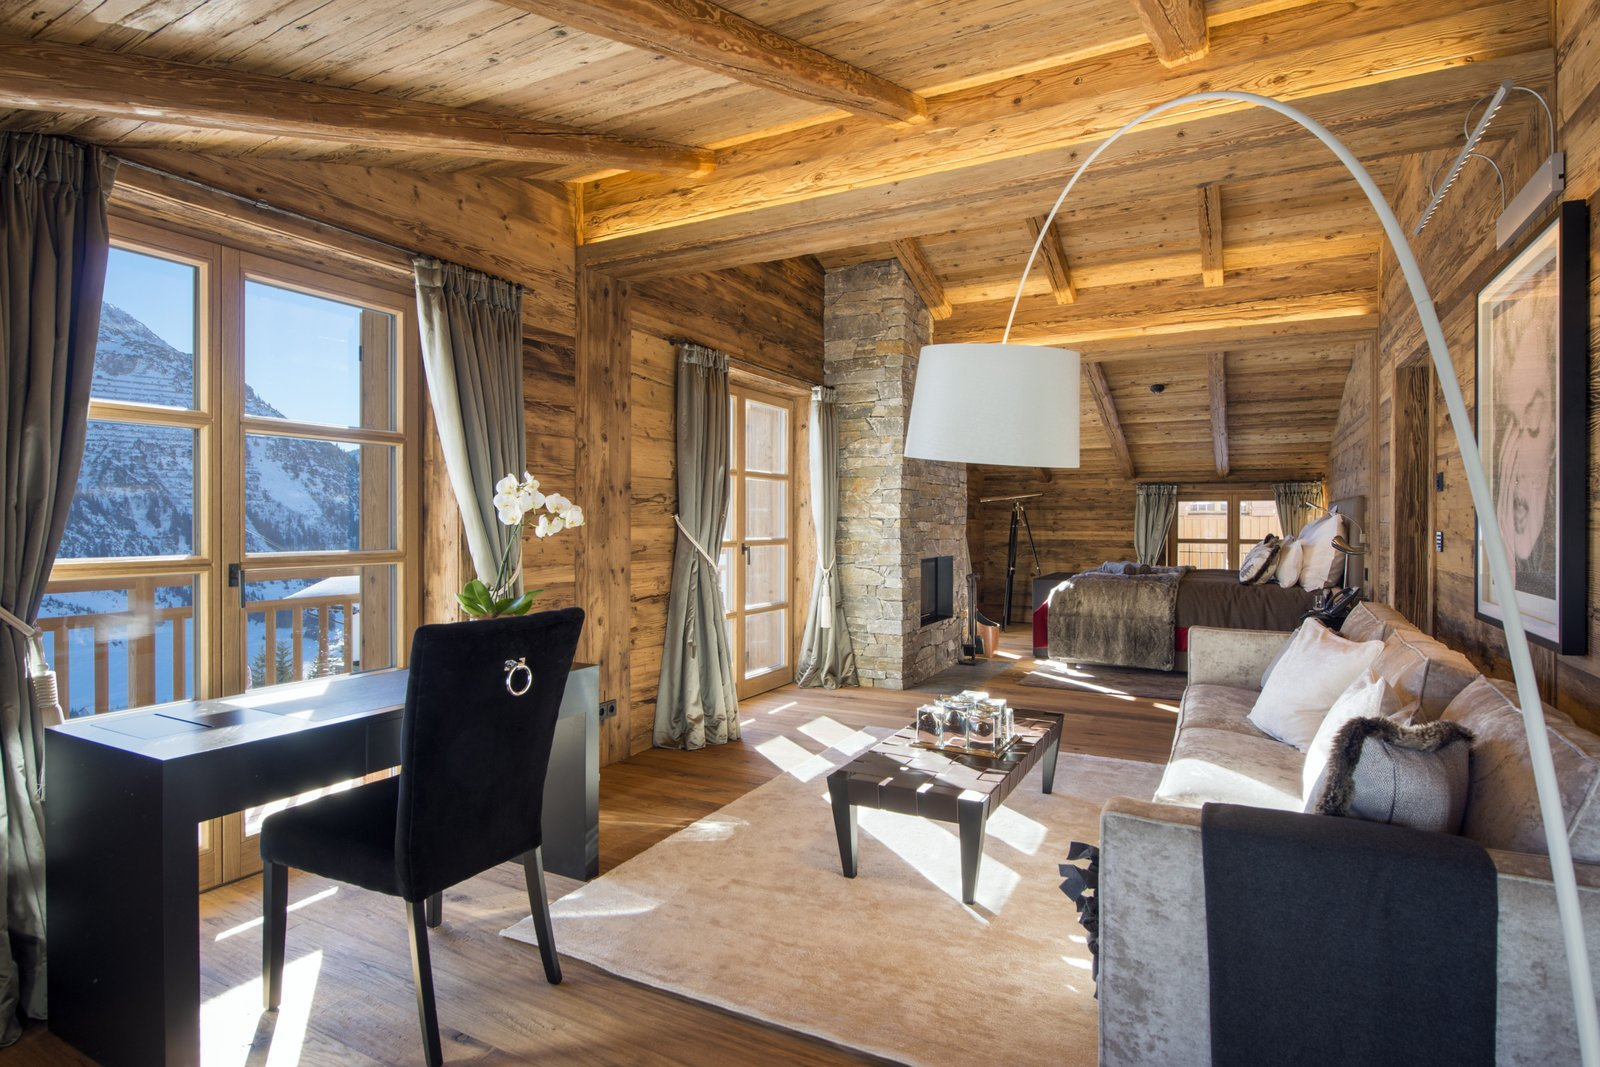 Living Room, Sofa, Floor Lighting, Coffee Tables, Medium Hardwood Floor, Rug Floor, Chair, Accent Lighting, Standard Layout Fireplace, and Desk  Photo 4 of 9 in Rent One of These Cozy Cabins For a Ski Trip This Winter